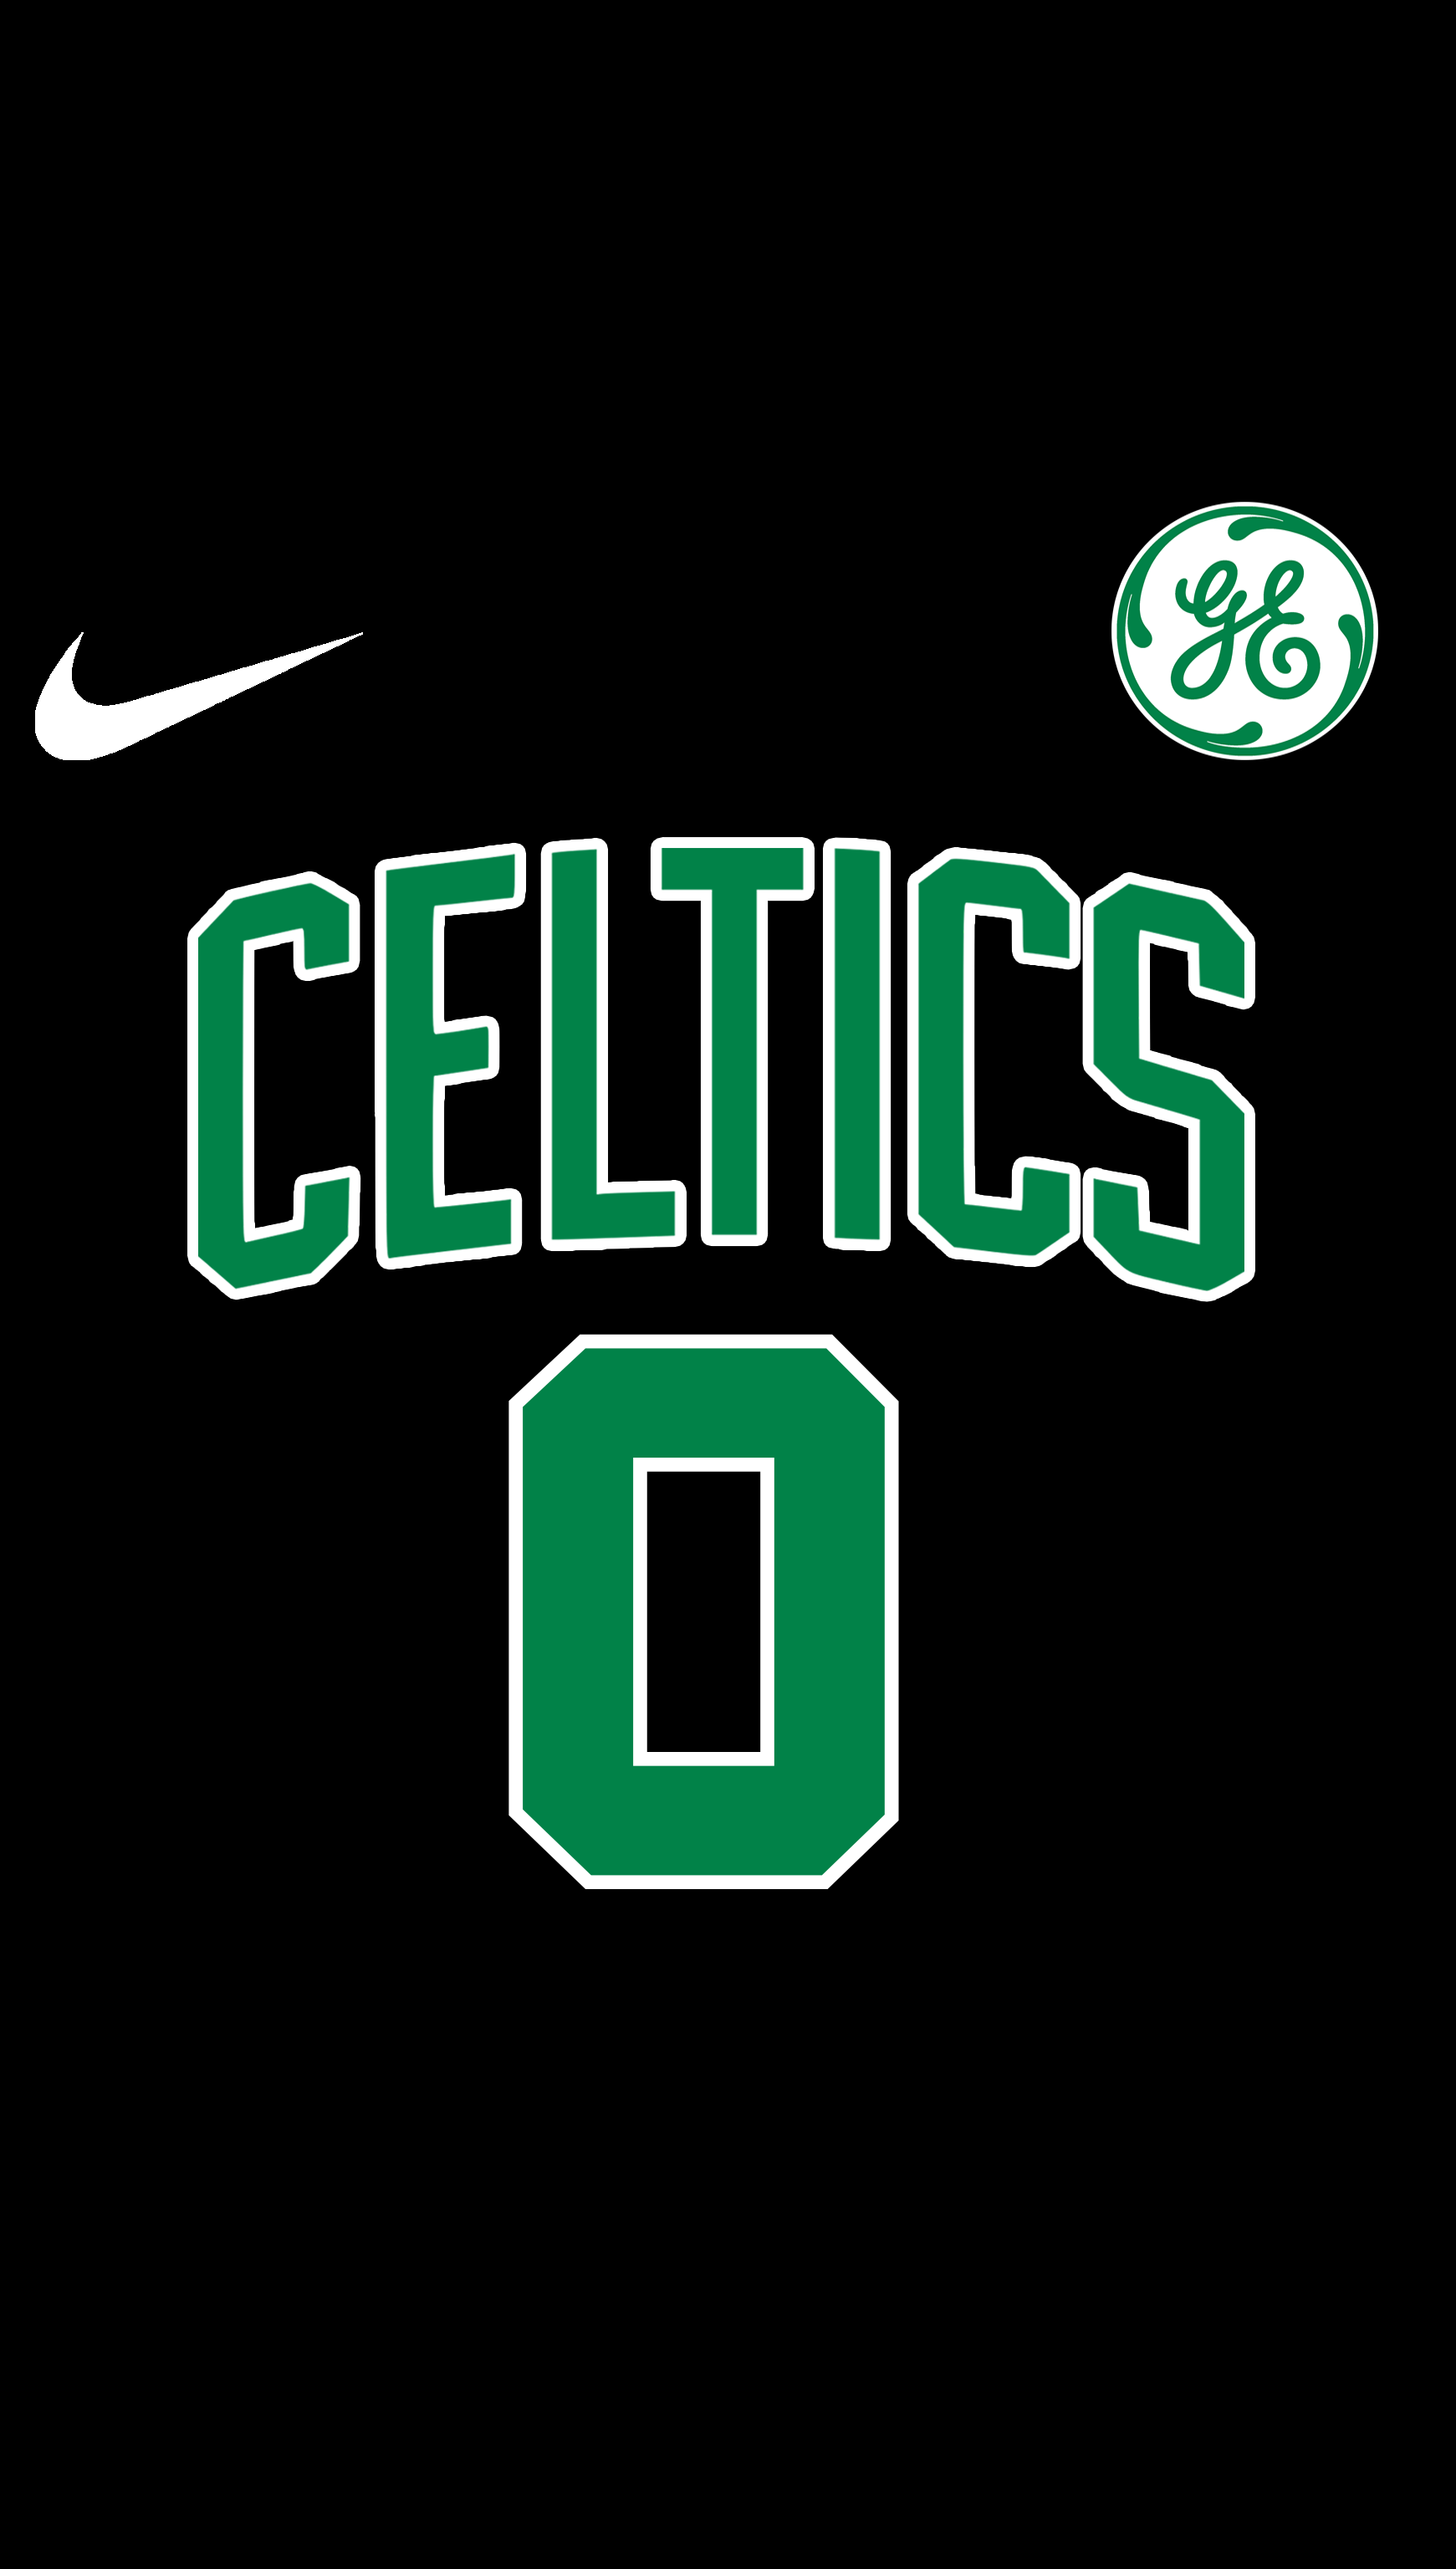 Pin By Heson Dahan On Nba Jersey Wallpaper Boston Celtics Wallpaper Boston Celtics Logo Logo Basketball